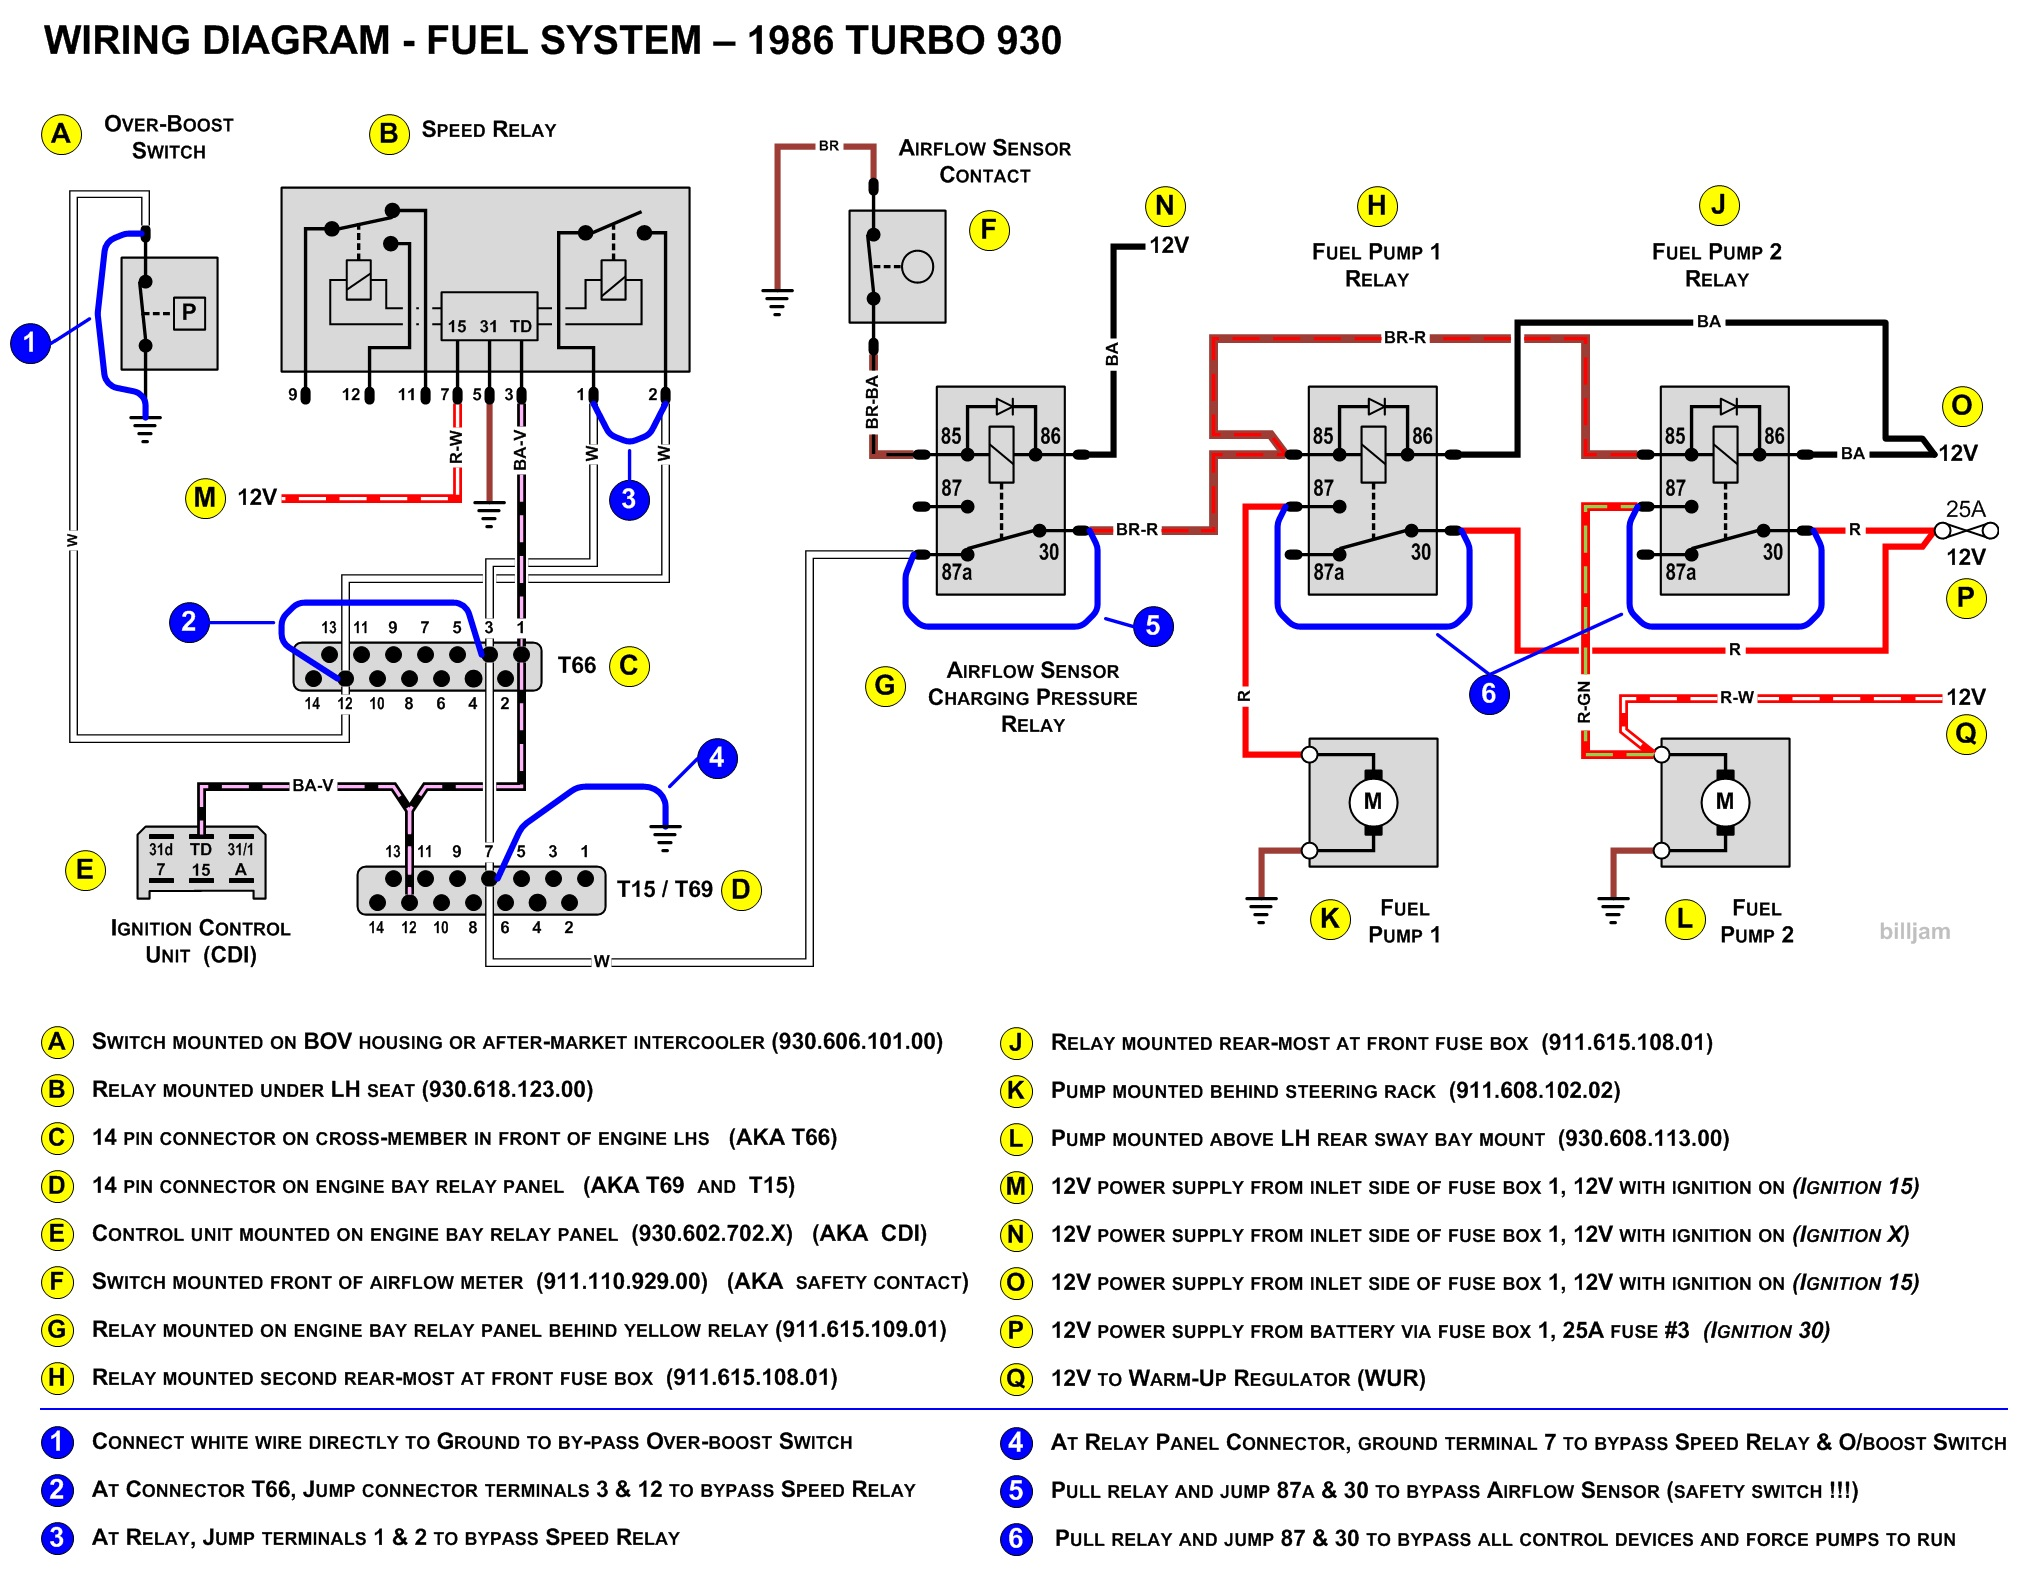 86 porsche 930 fuel system wiring diagram jumpers made a fuse box label for my 88 page 3 pelican parts technical bbs  at edmiracle.co